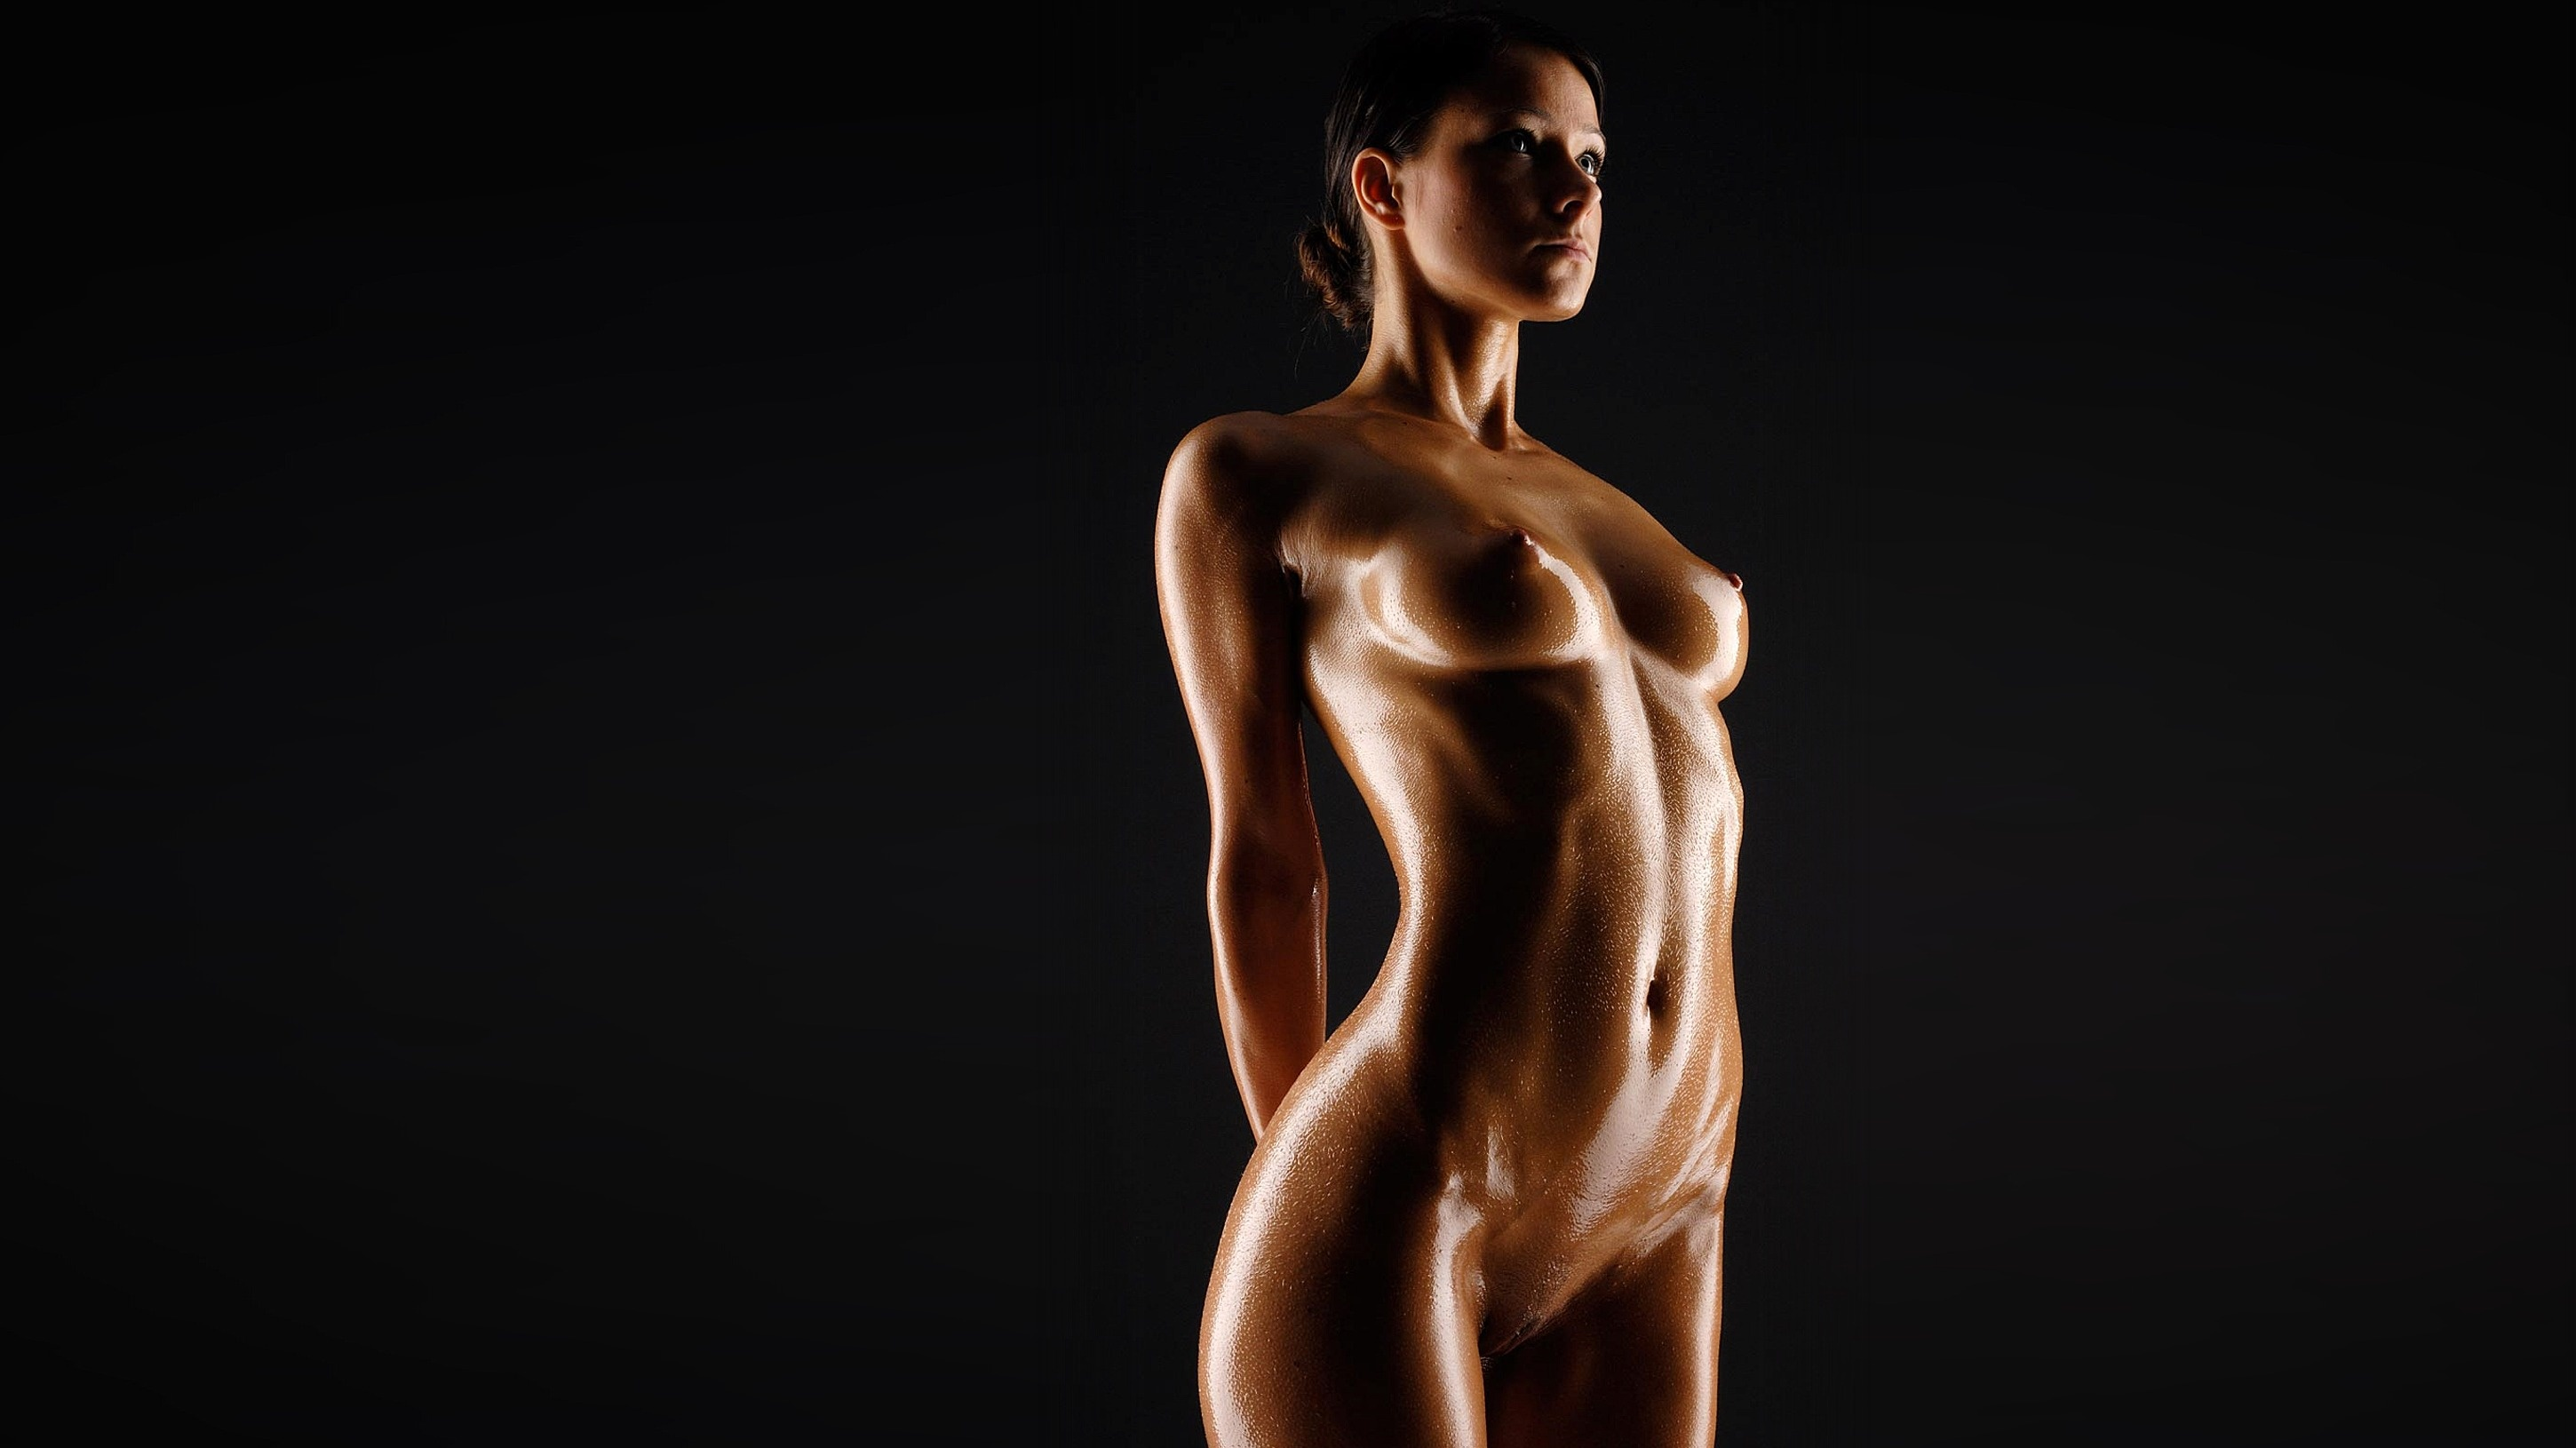 Wallpaper Melisa Mendiny, Melisa, Mika Walls, Nude, Light -4160